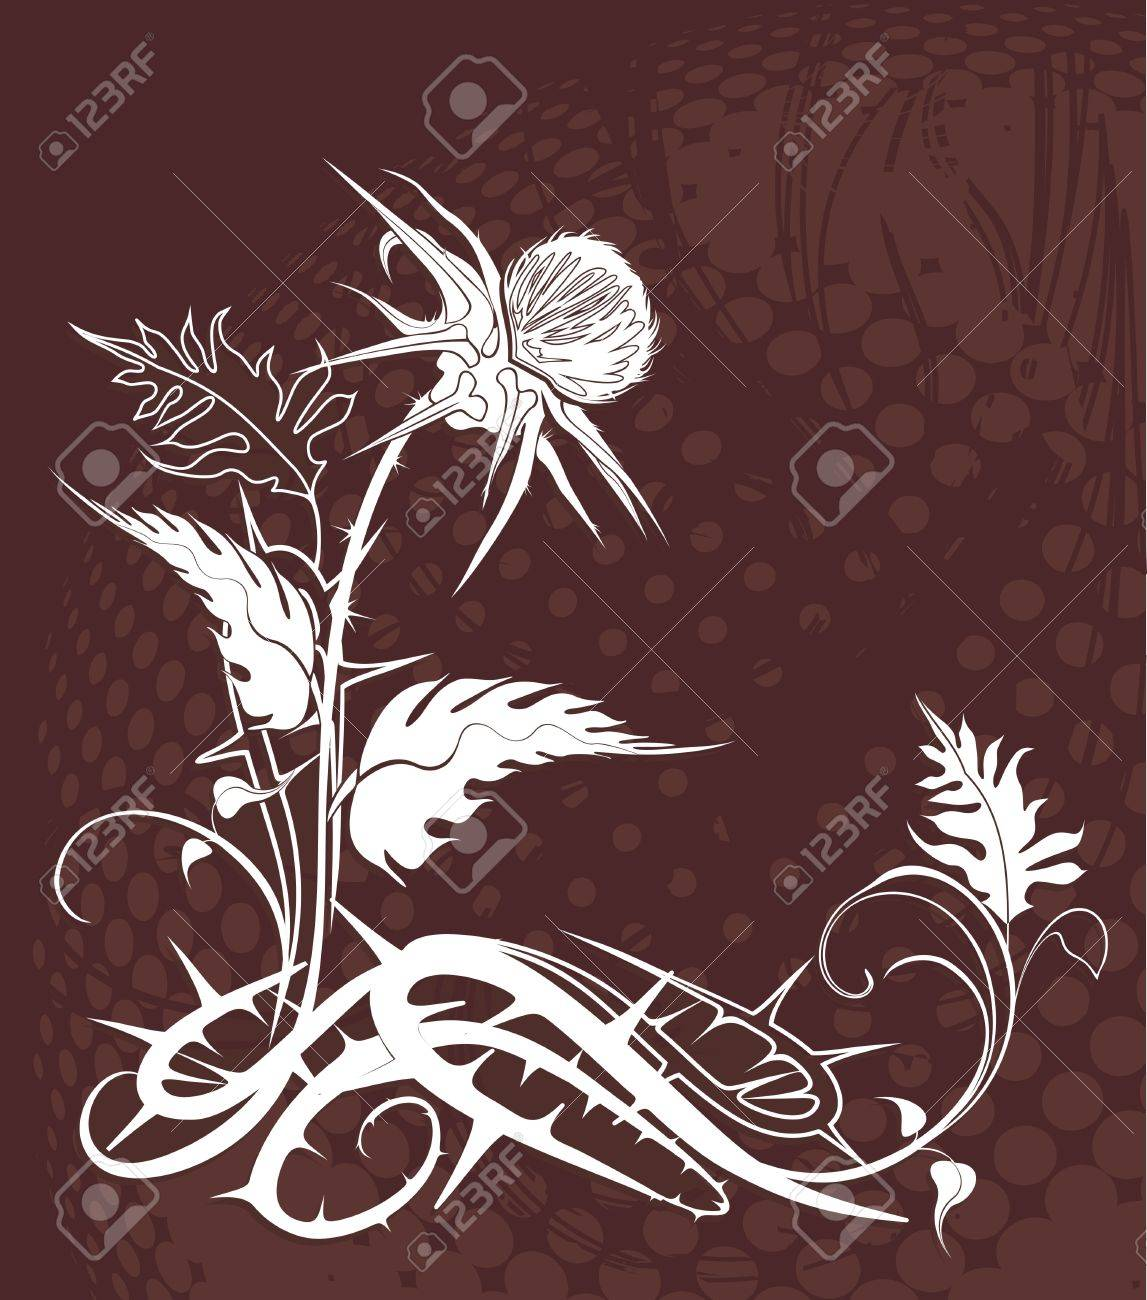 vector background decorated with thistle plant in grunge style - 24029059